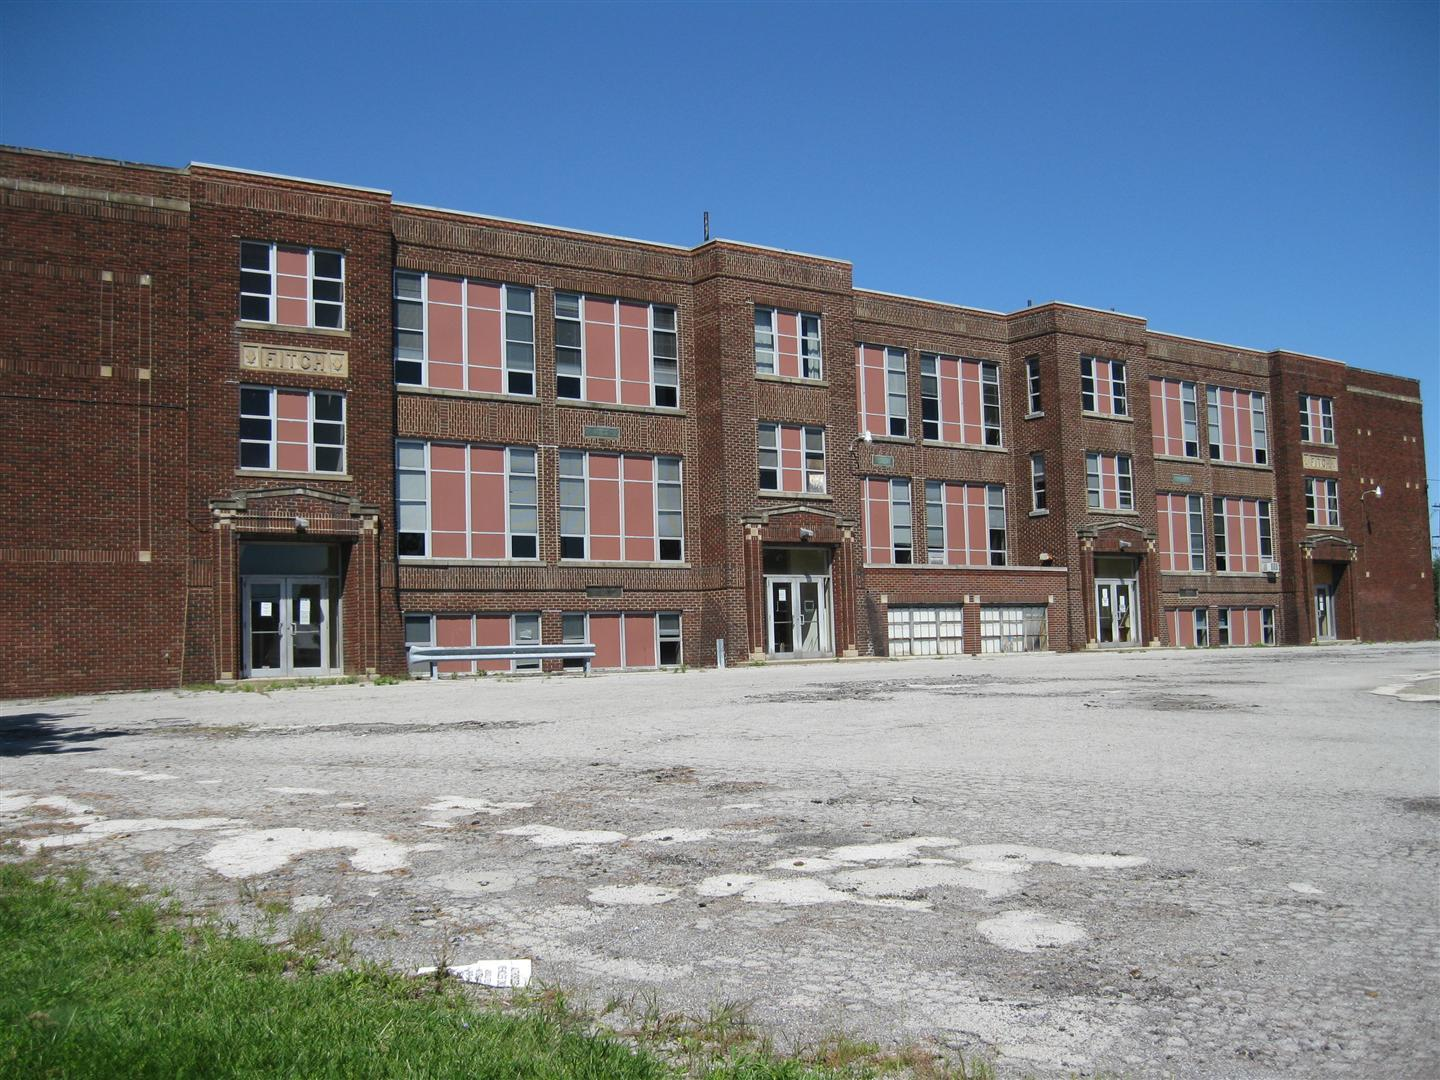 Originally name the Austintown Consolidated school, the Austintown Fitch High School became the Austintown Middle School until it was closed when the new middle school was built.  THIS BUILDING IS SCHEDULED FOR DEMOLITION.